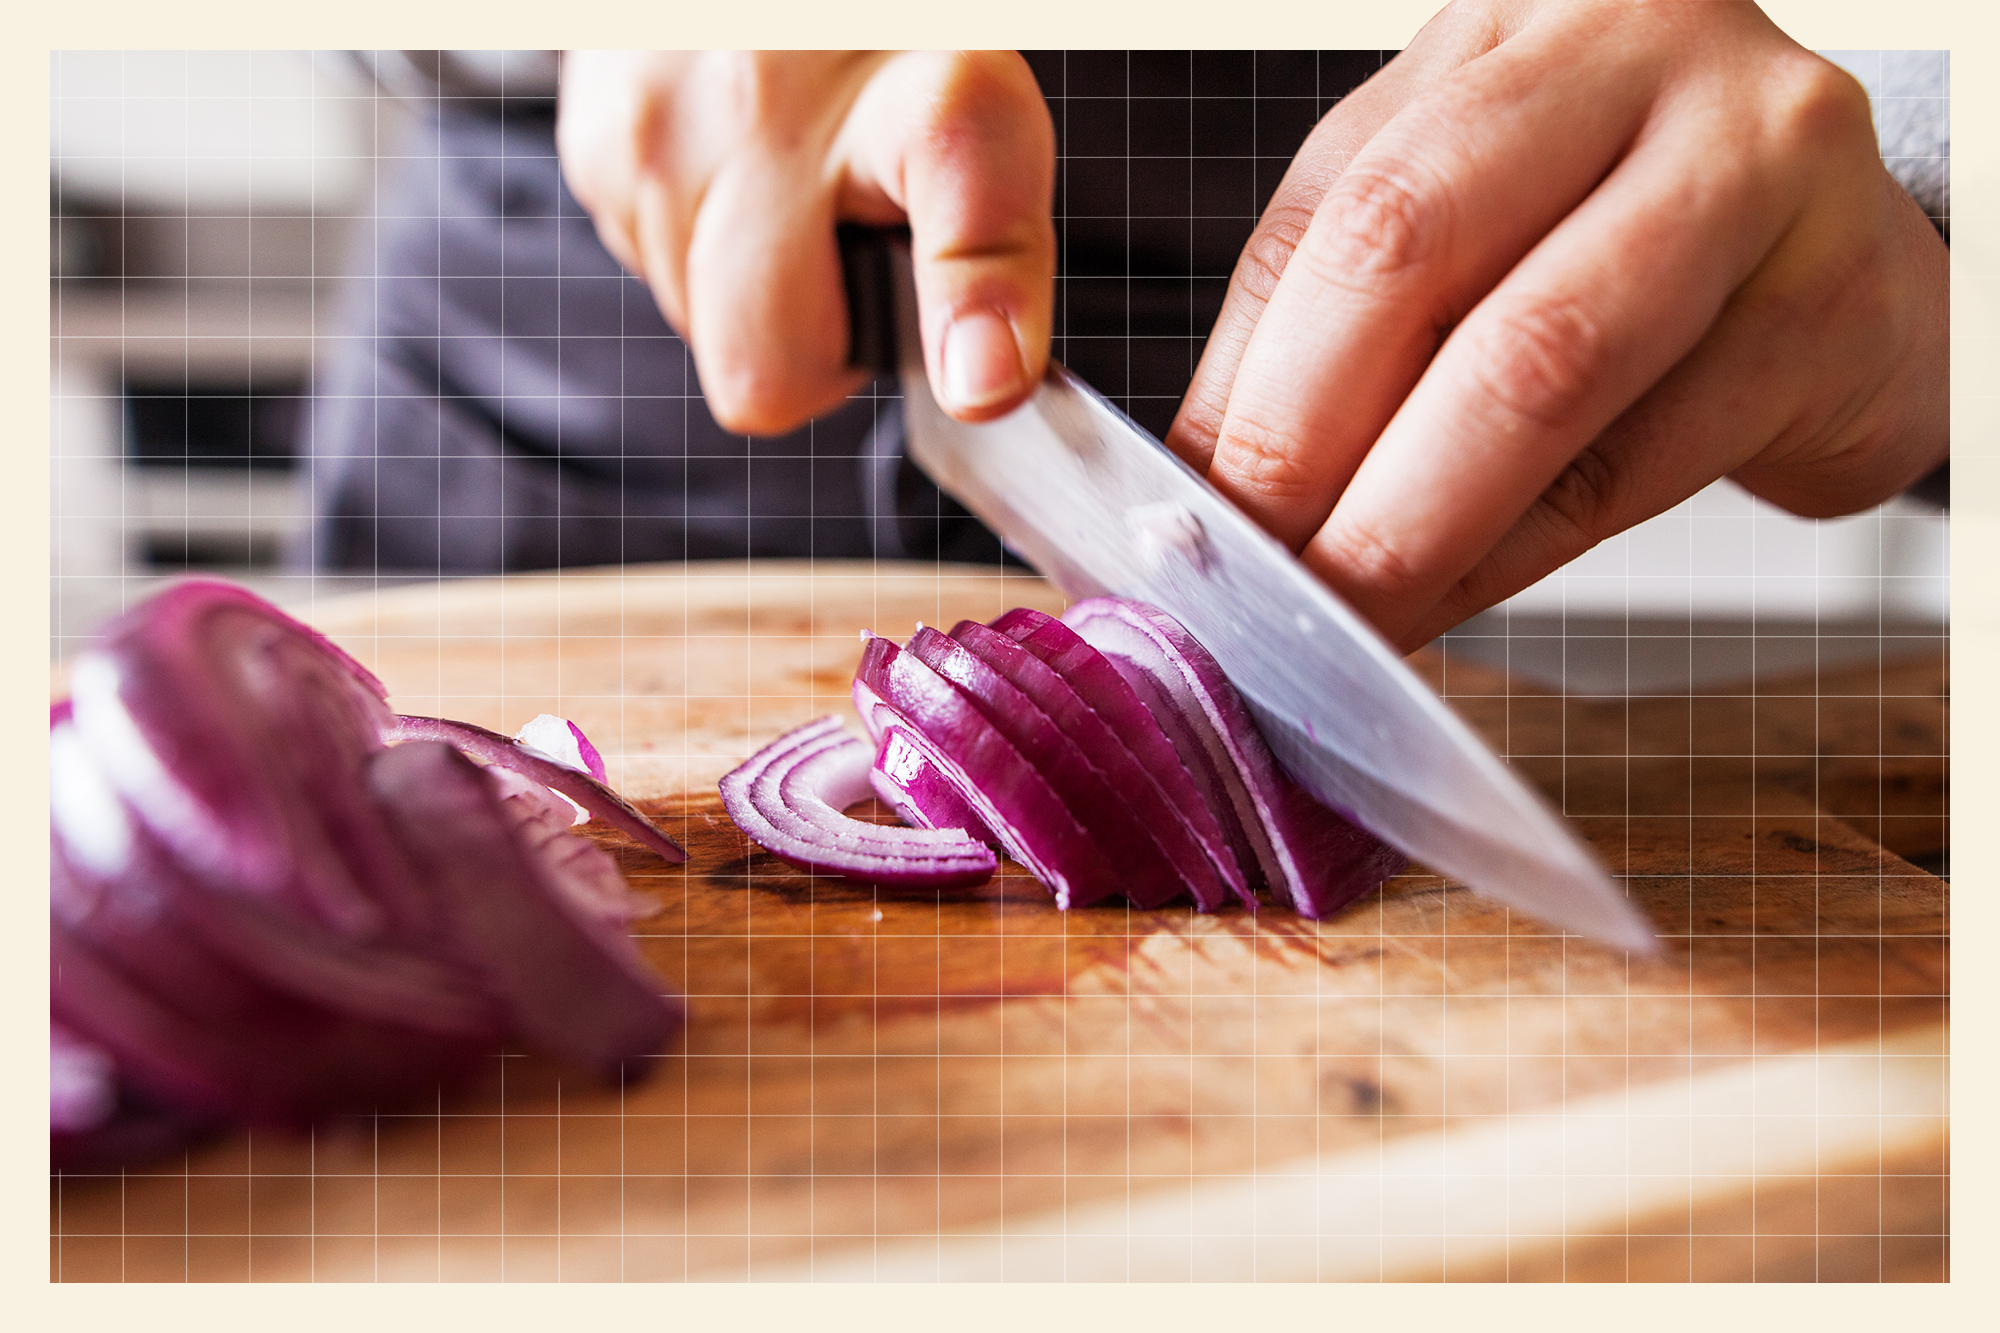 close up of hand's cutting a red onion